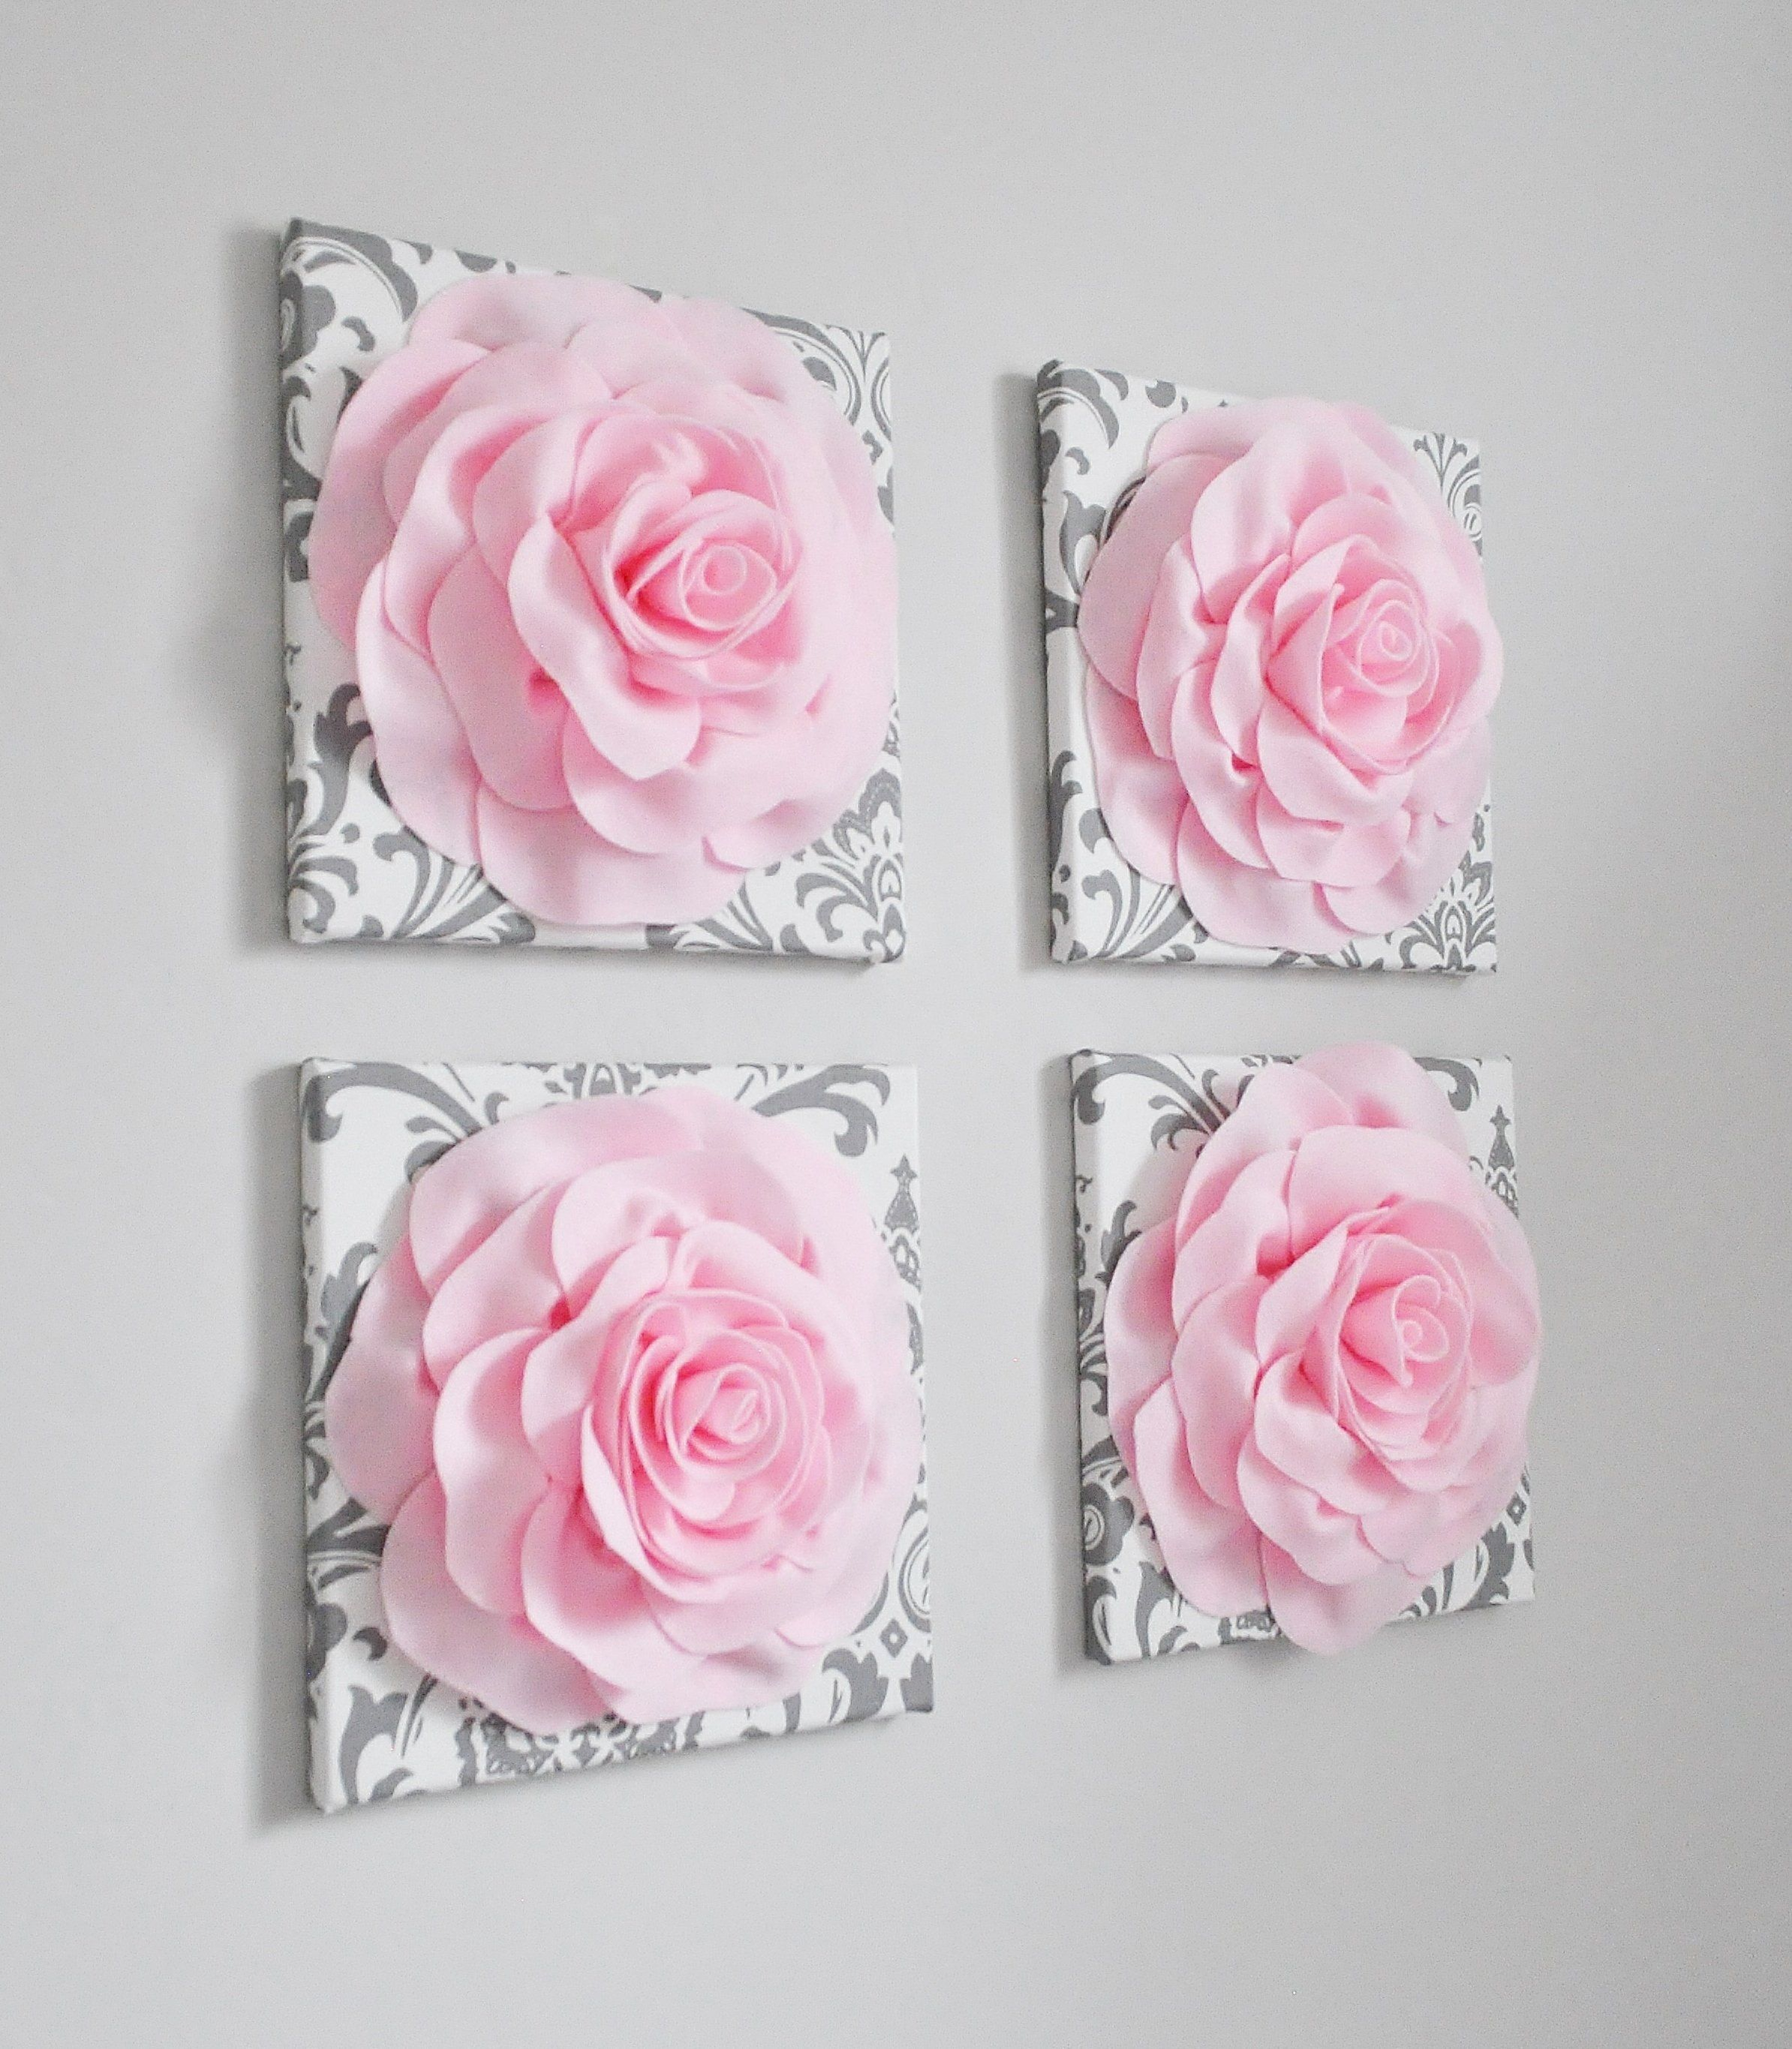 Floral Wall Decor Pink And White And Gray Damask Flower Wall Hangings 12 X12 Canvases Flower Wall Art White Paper Flowers Flower Wall Decor Pink Wall Decor